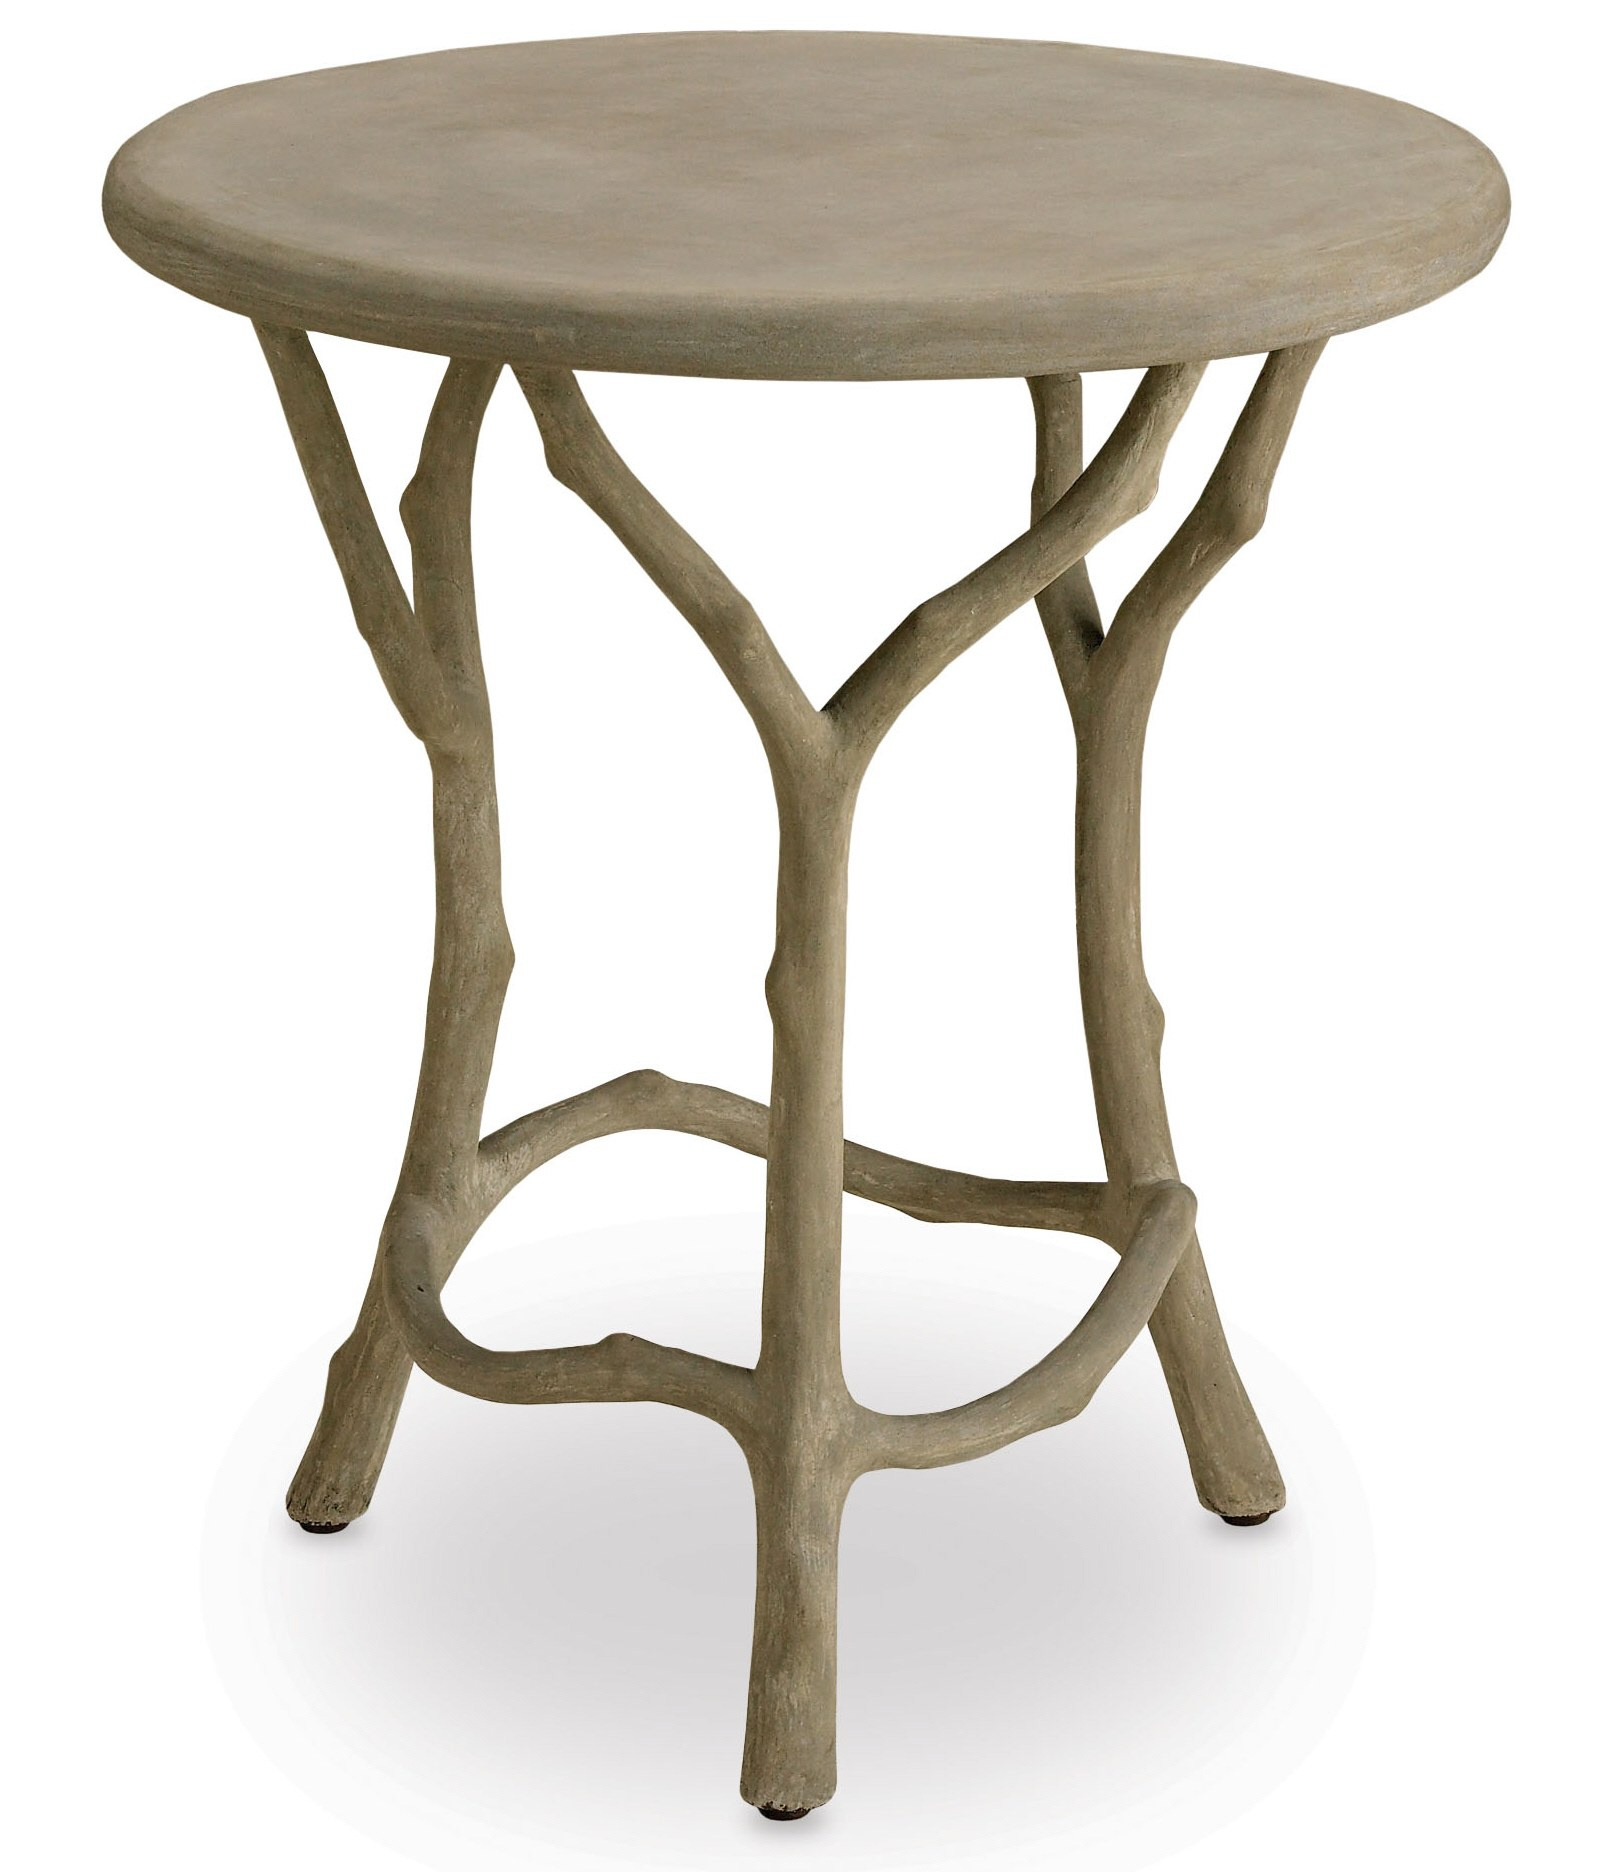 This accent table by Currey & Company is well-suited for the indoors, too.